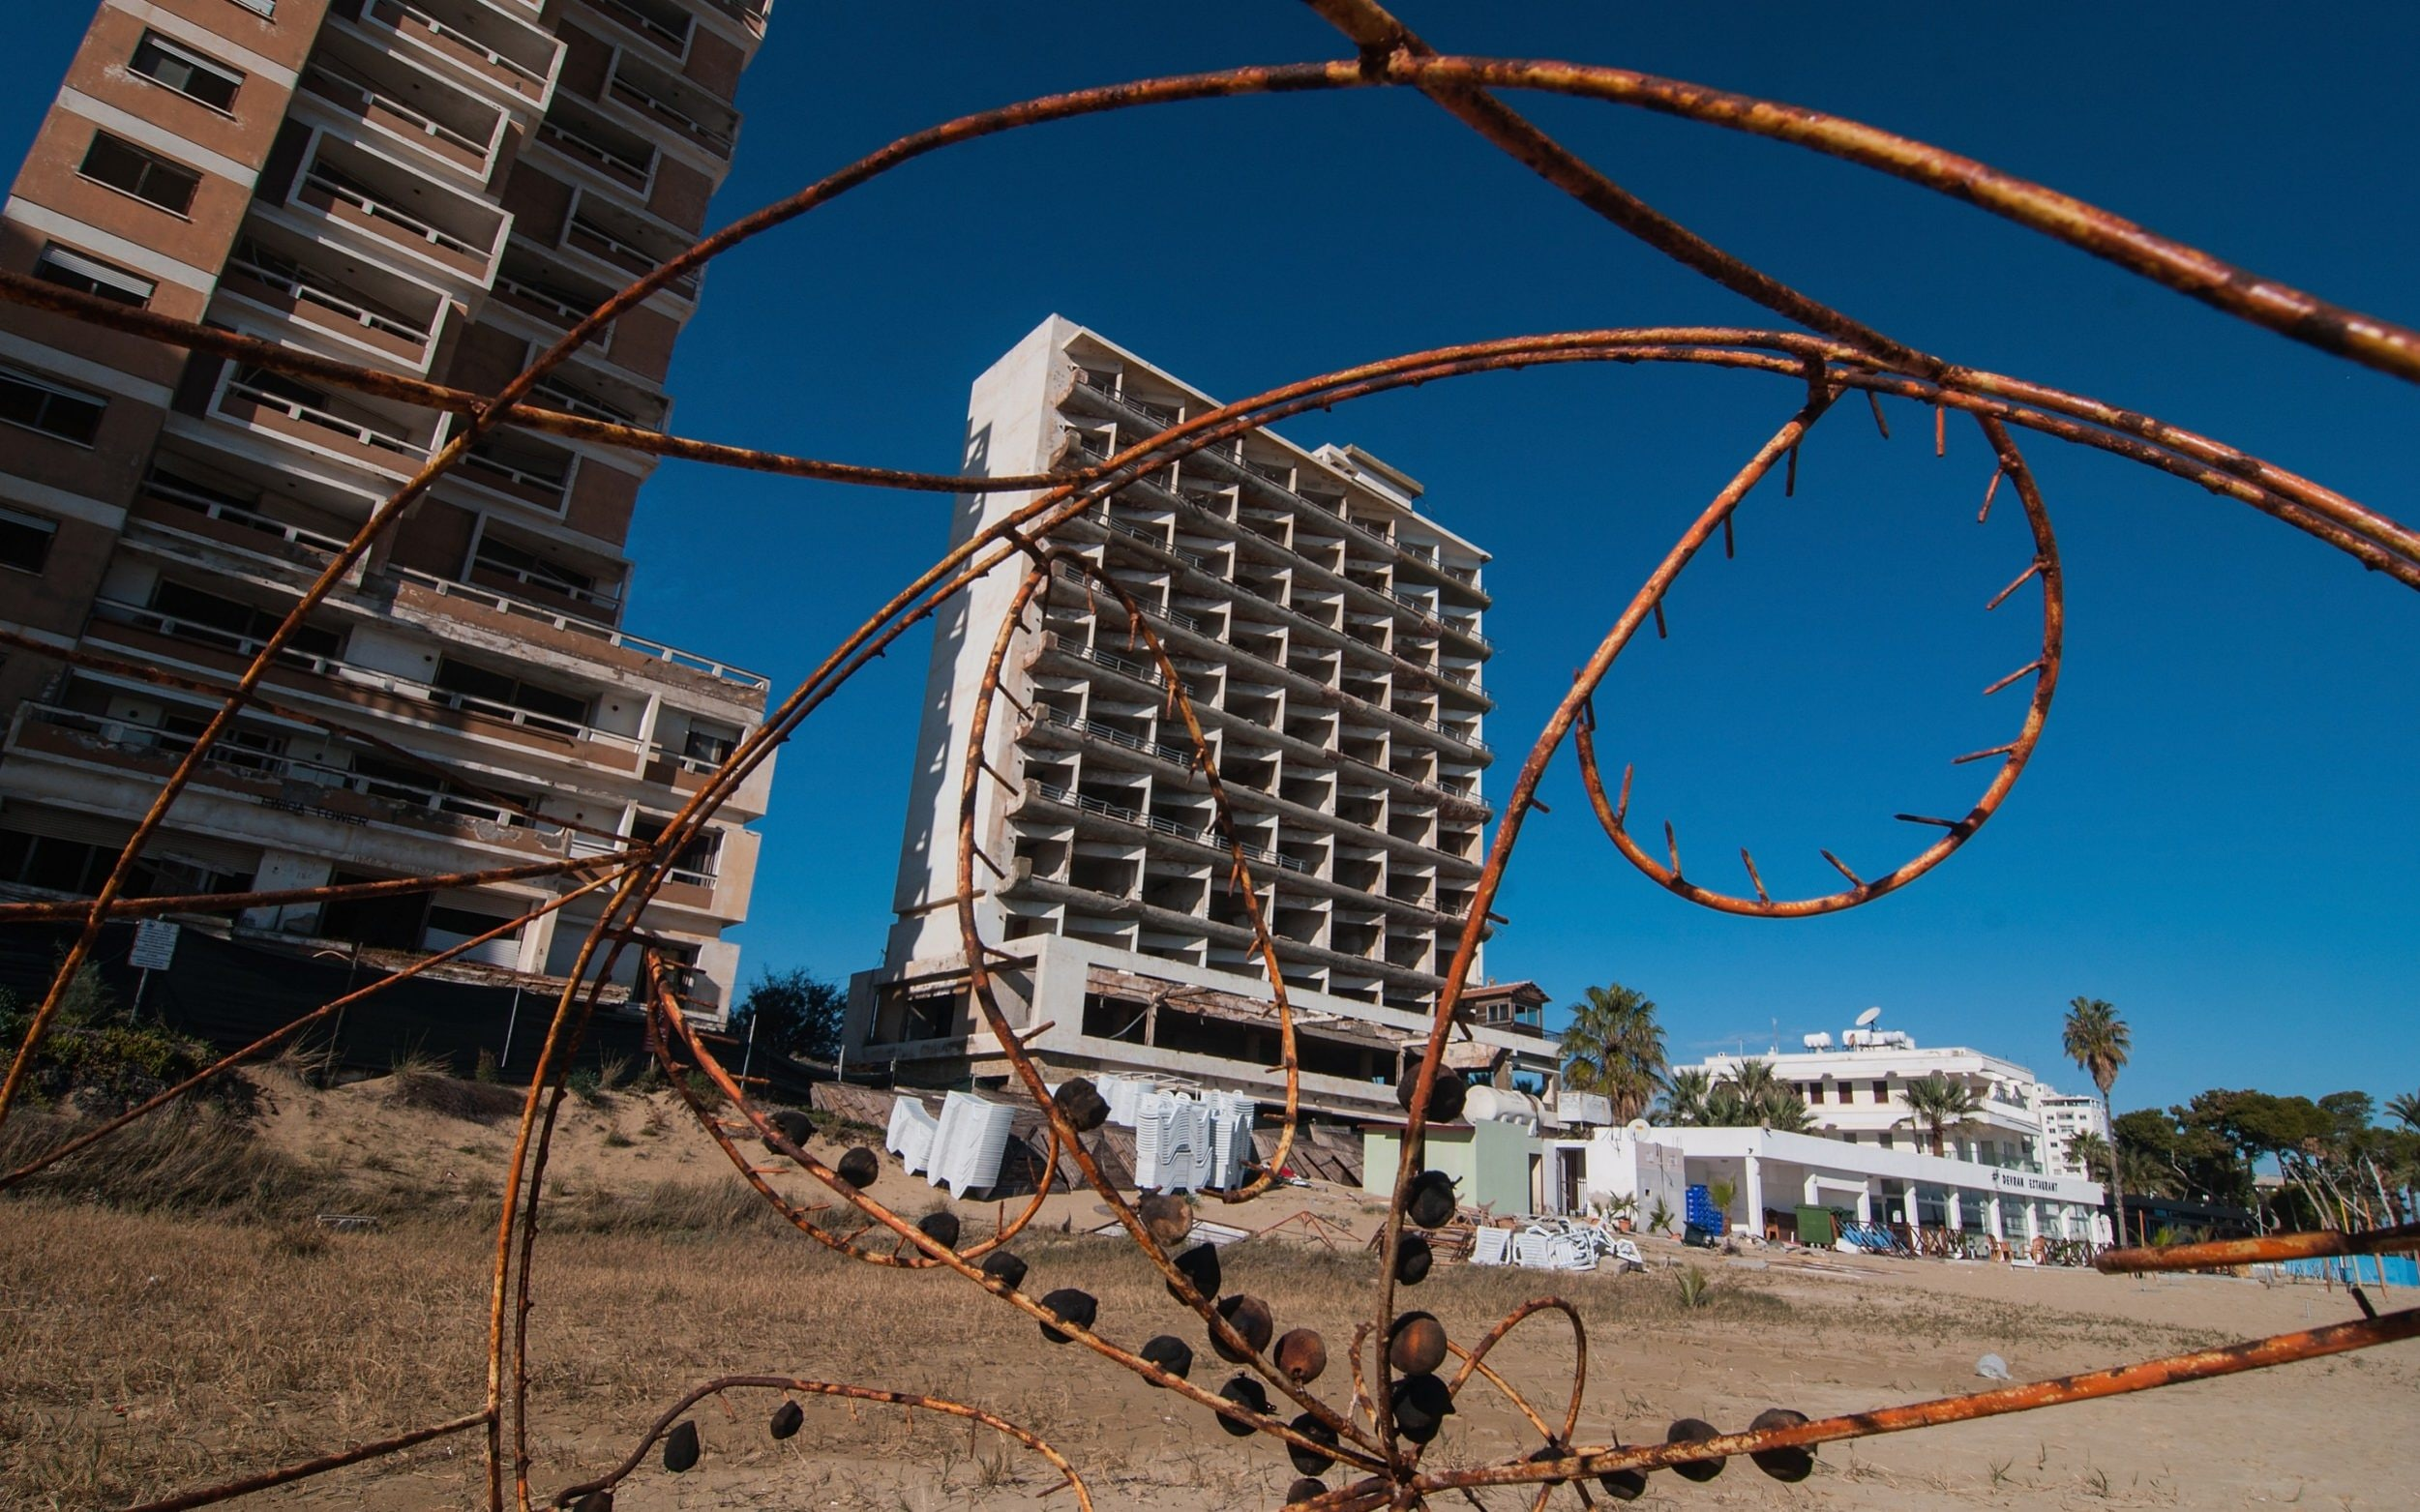 Turkeys president plans provocative picnic in symbolic Cyprus ghost town